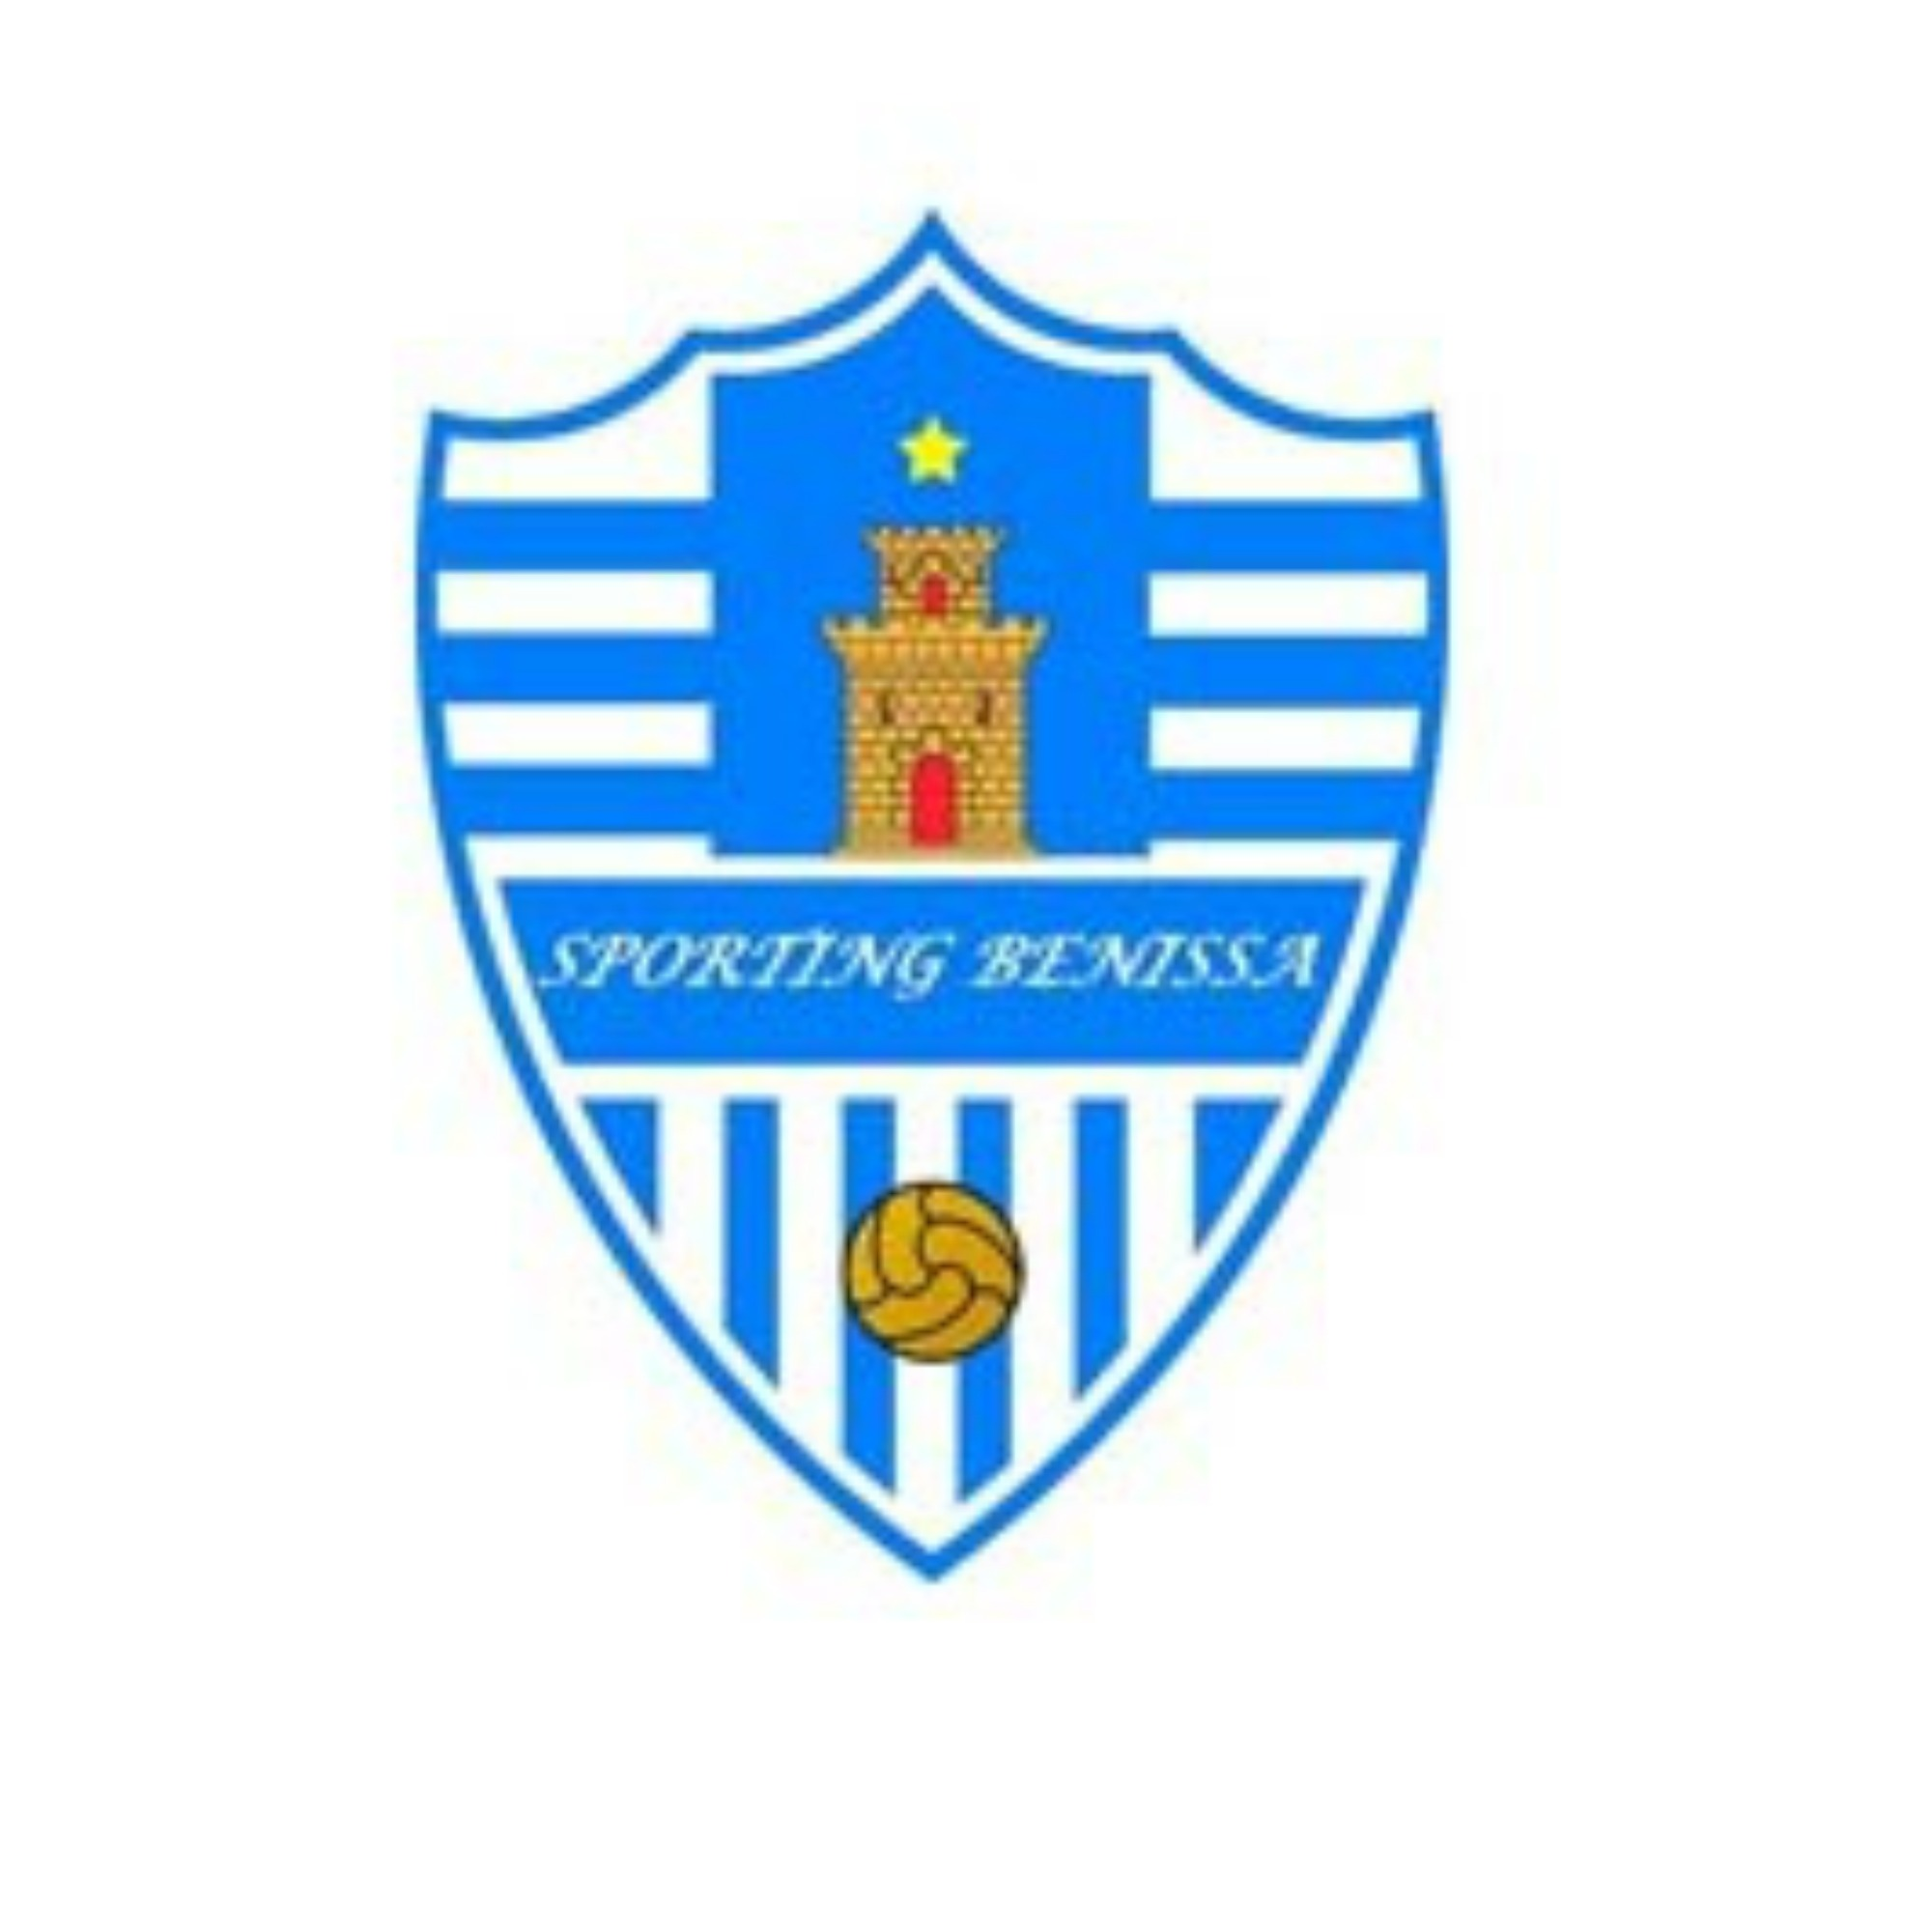 Club de Football Sporting Benissa